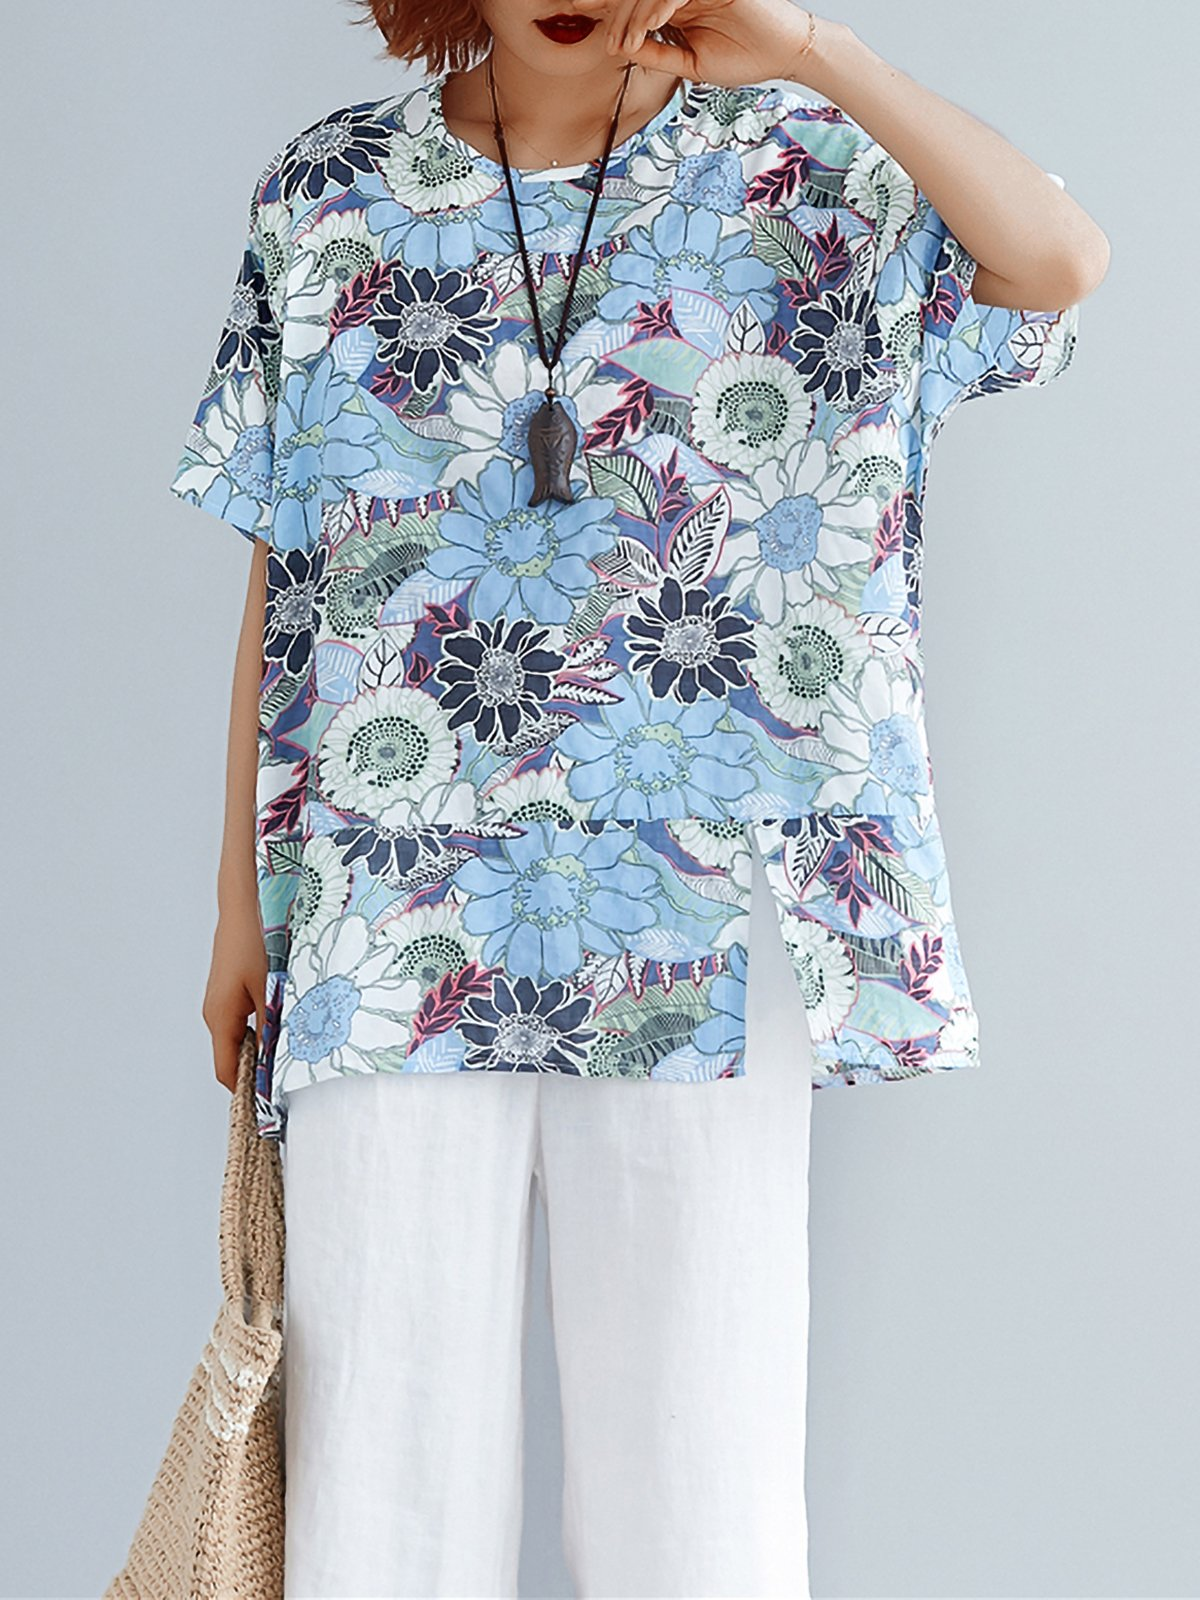 Plus Size Women Cotton And Linen Round Neck Short Sleeve Vintage Floral Casual Tops